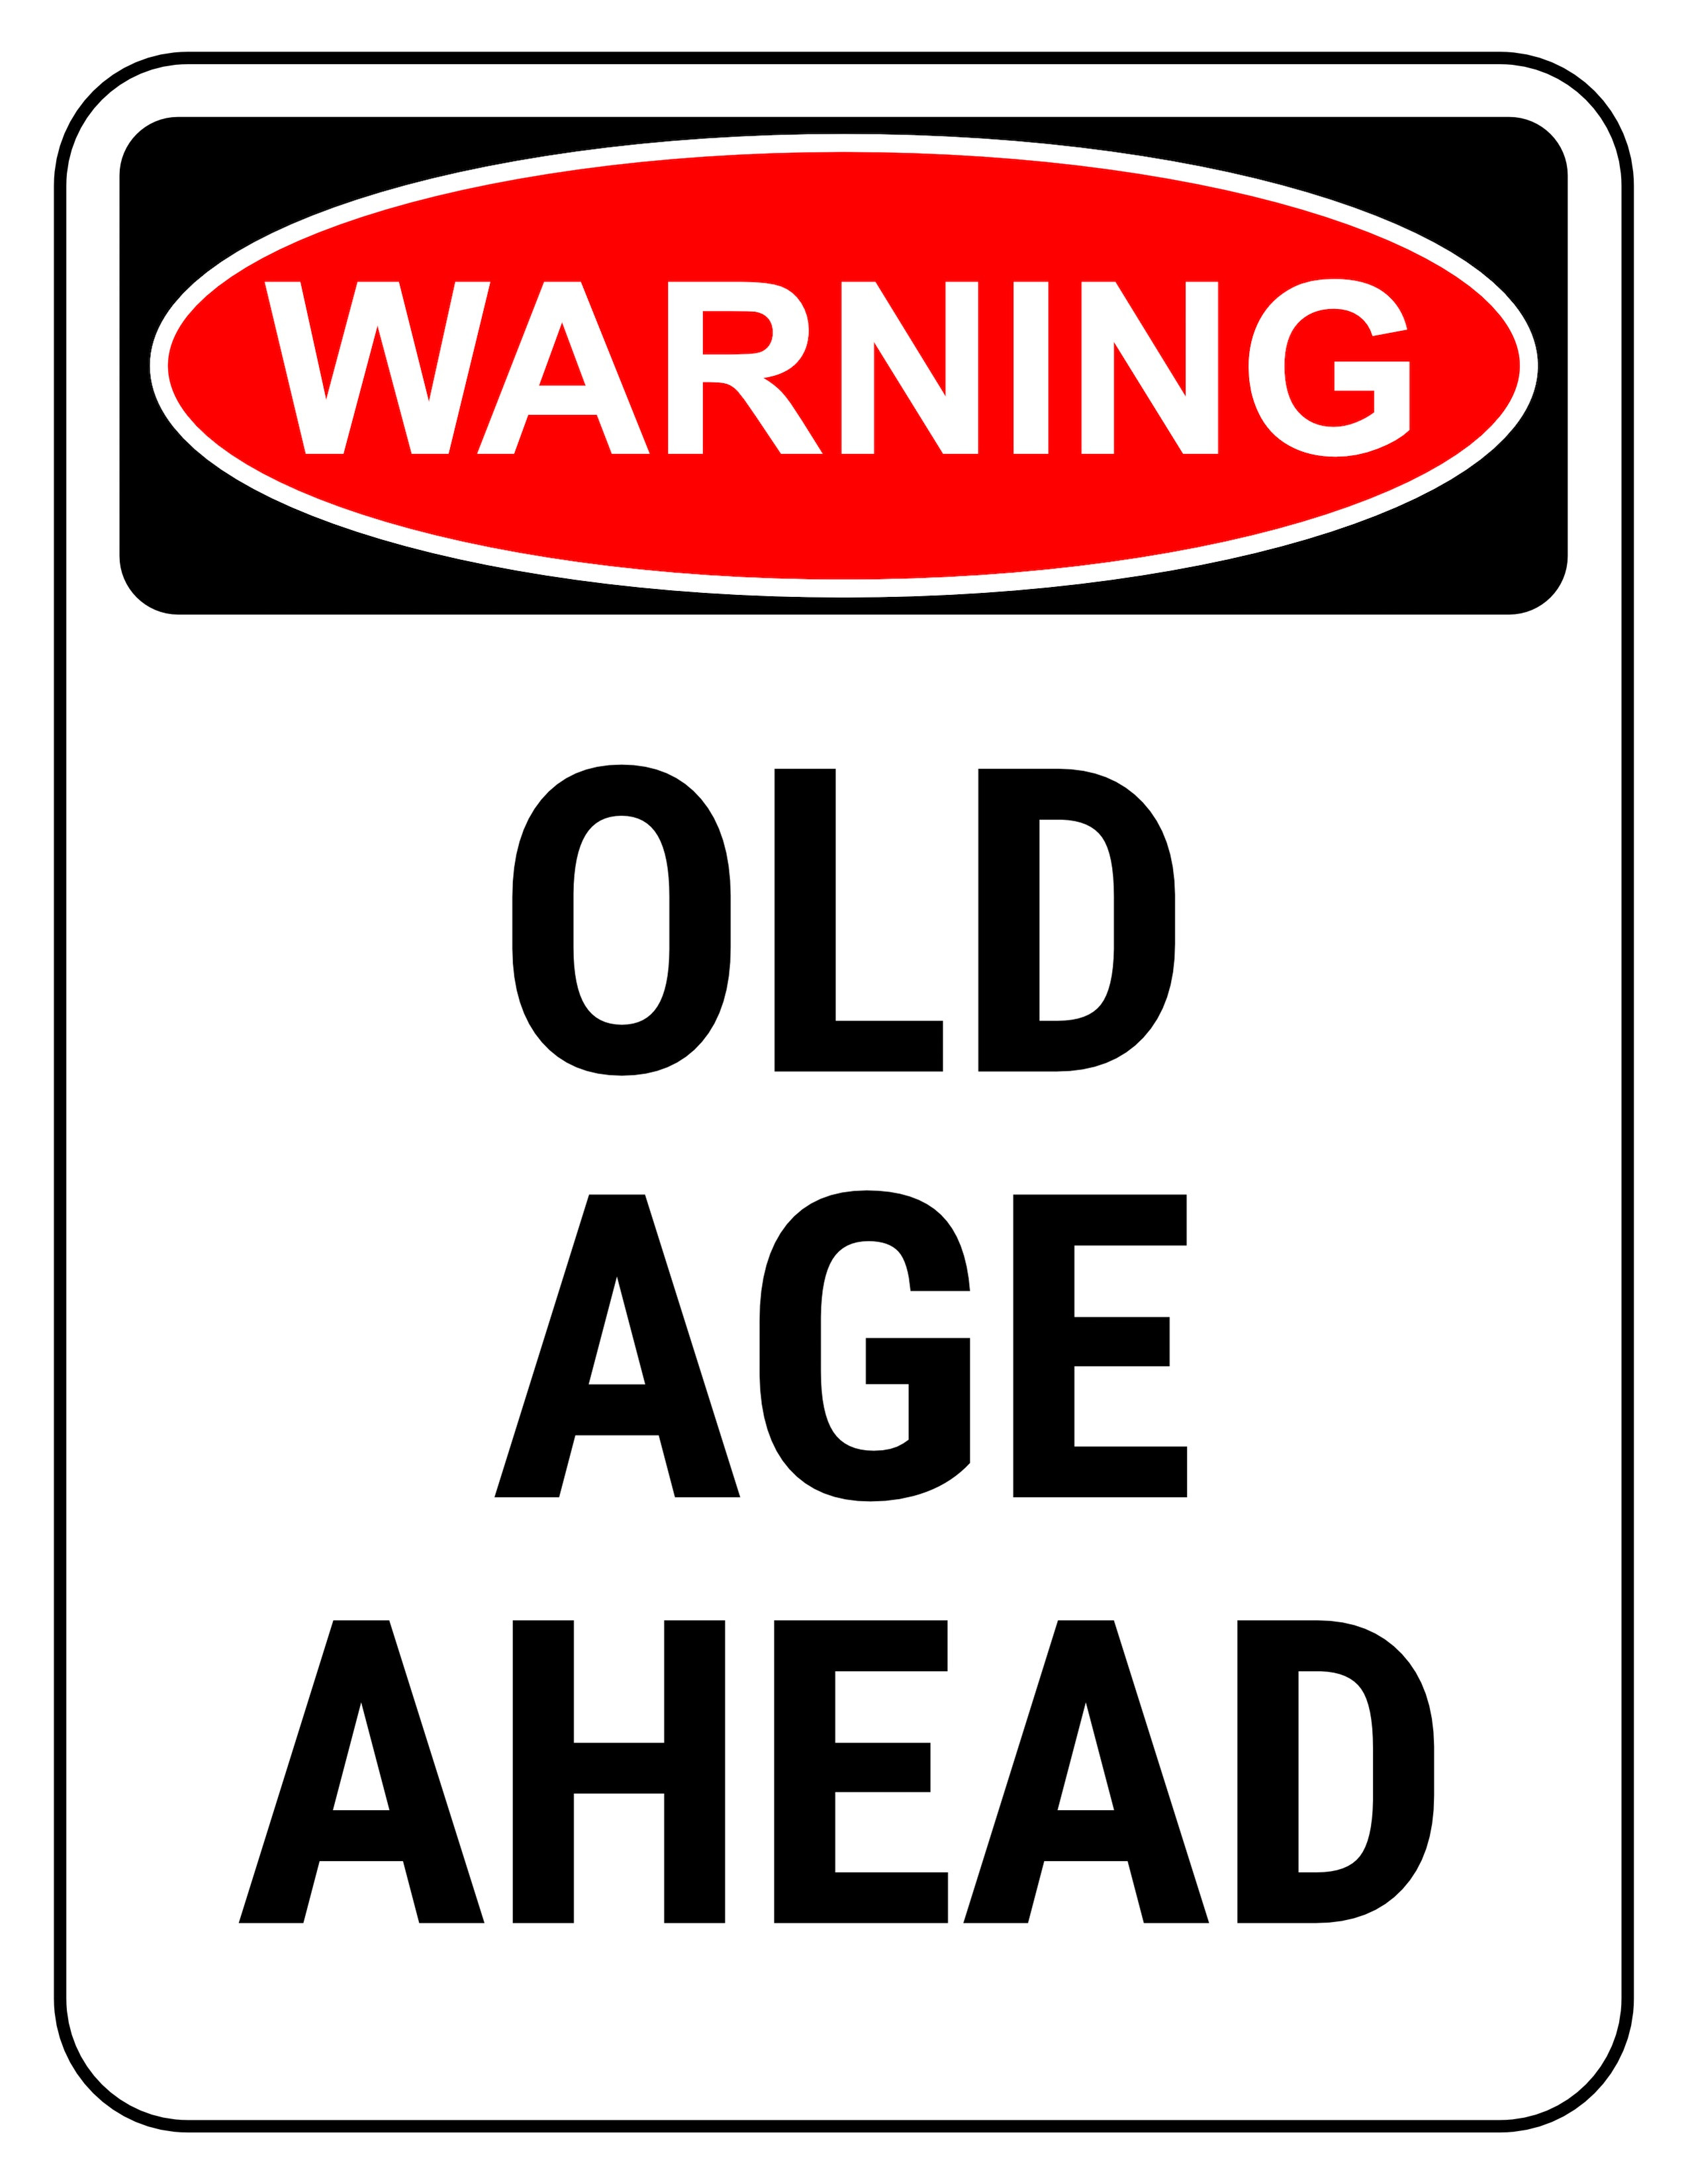 Funny Birthday Signs  Funny Safety Signs to Download and Print